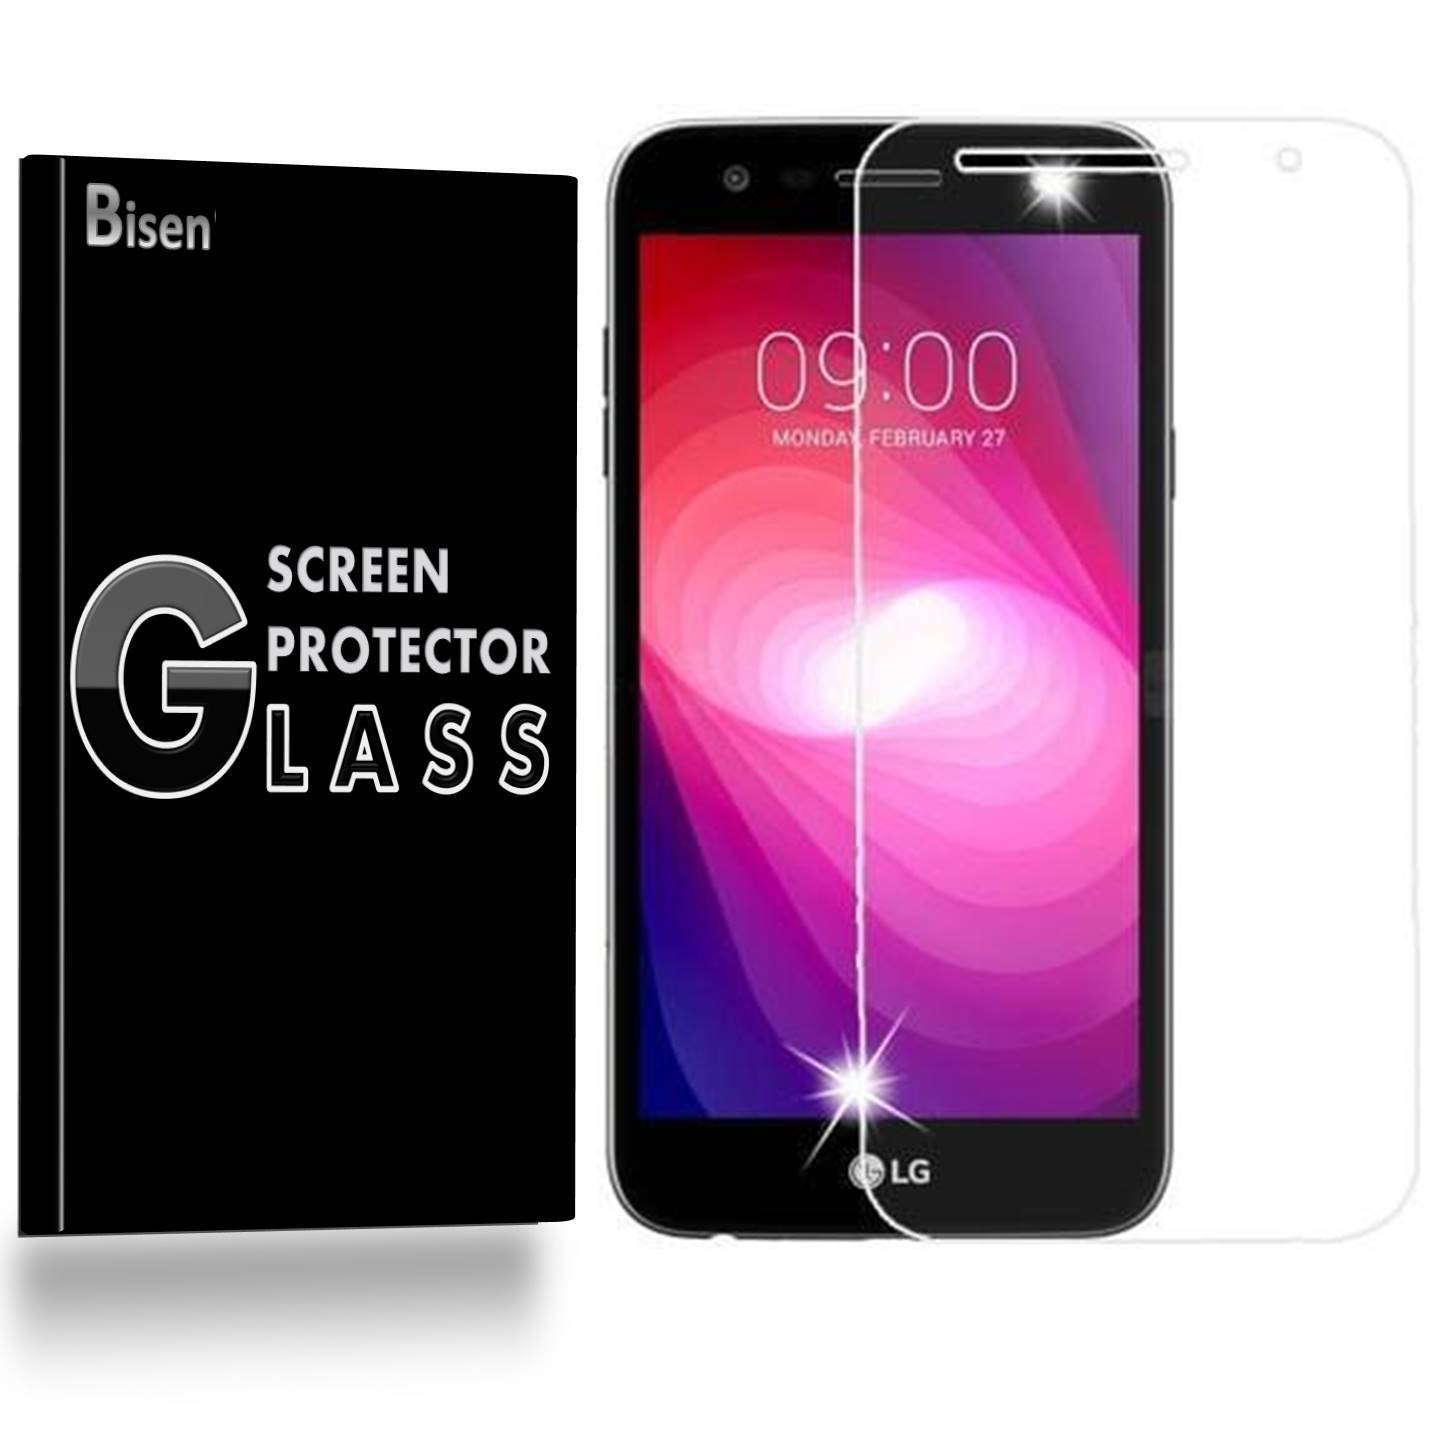 LG X Power2 / LG Fiesta LTE / LG X Charge / LG K10 Power [BISEN] 9H Tempered Glass Screen Protector, Anti-Scratch, Anti-Shock, Shatterproof, Bubble Free